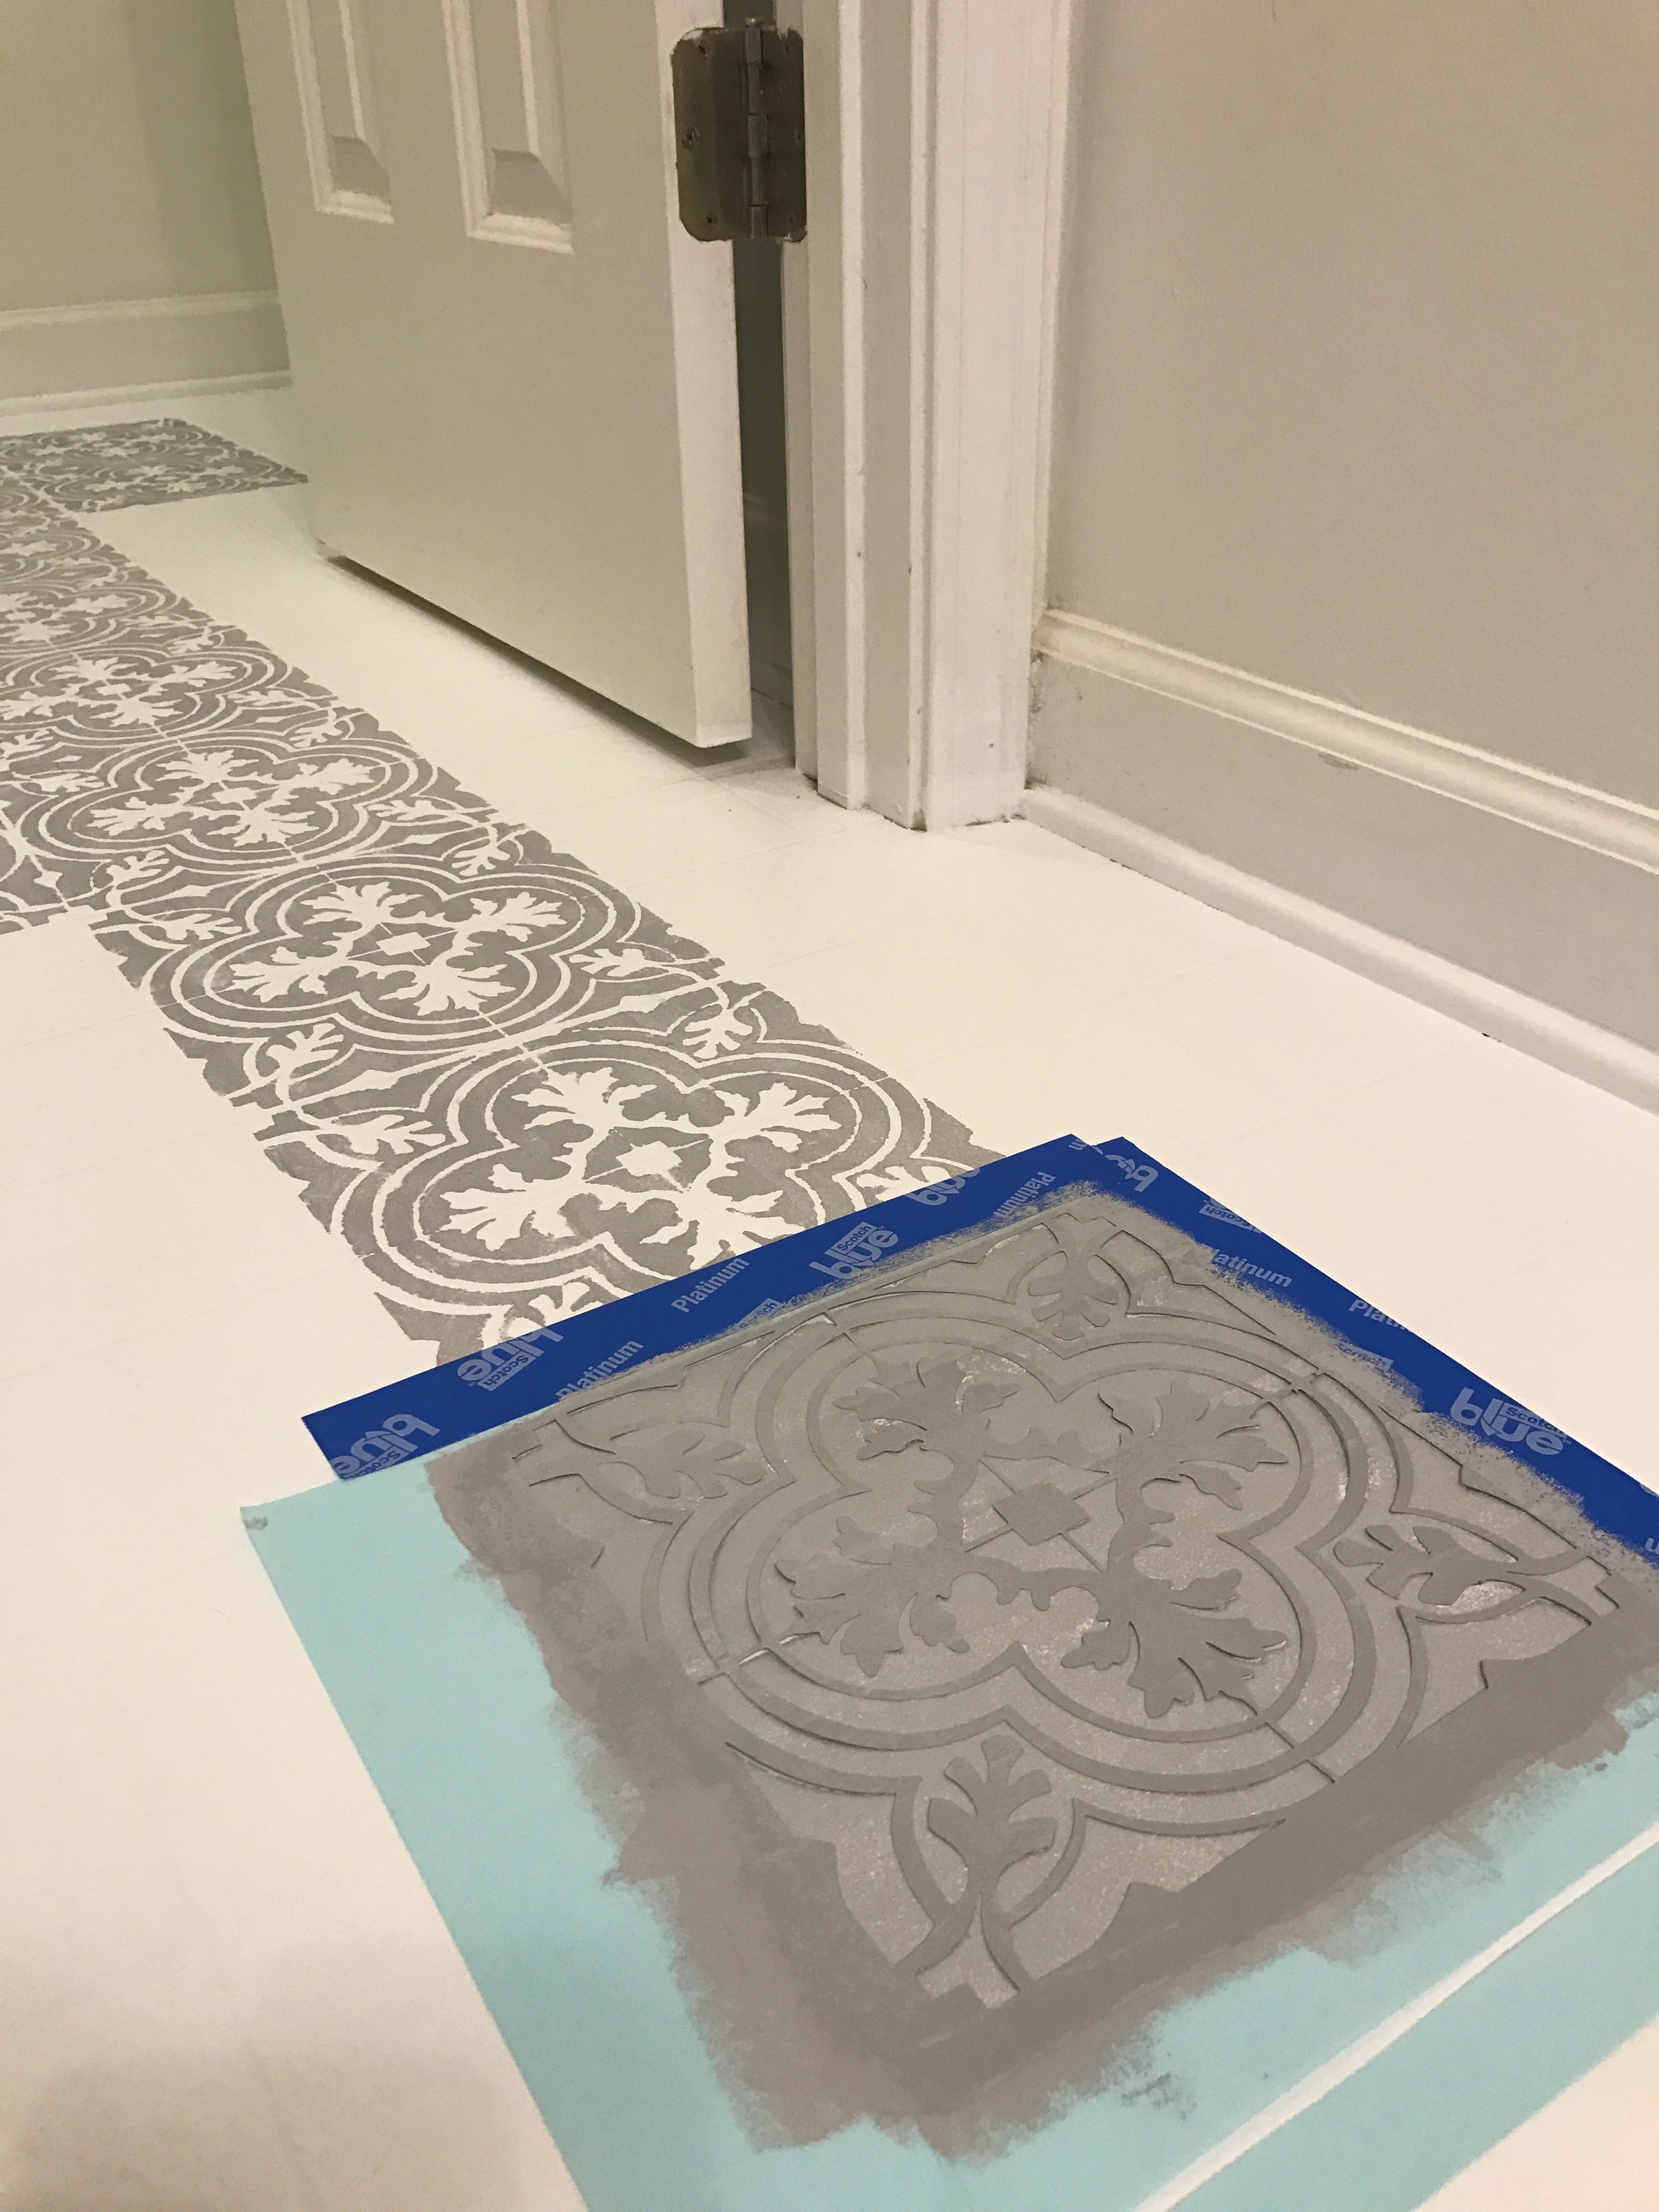 How to Paint Your Linoleum or Tile Floors to Look Like Patterned Cement Tiles- Full DIY Tutorial